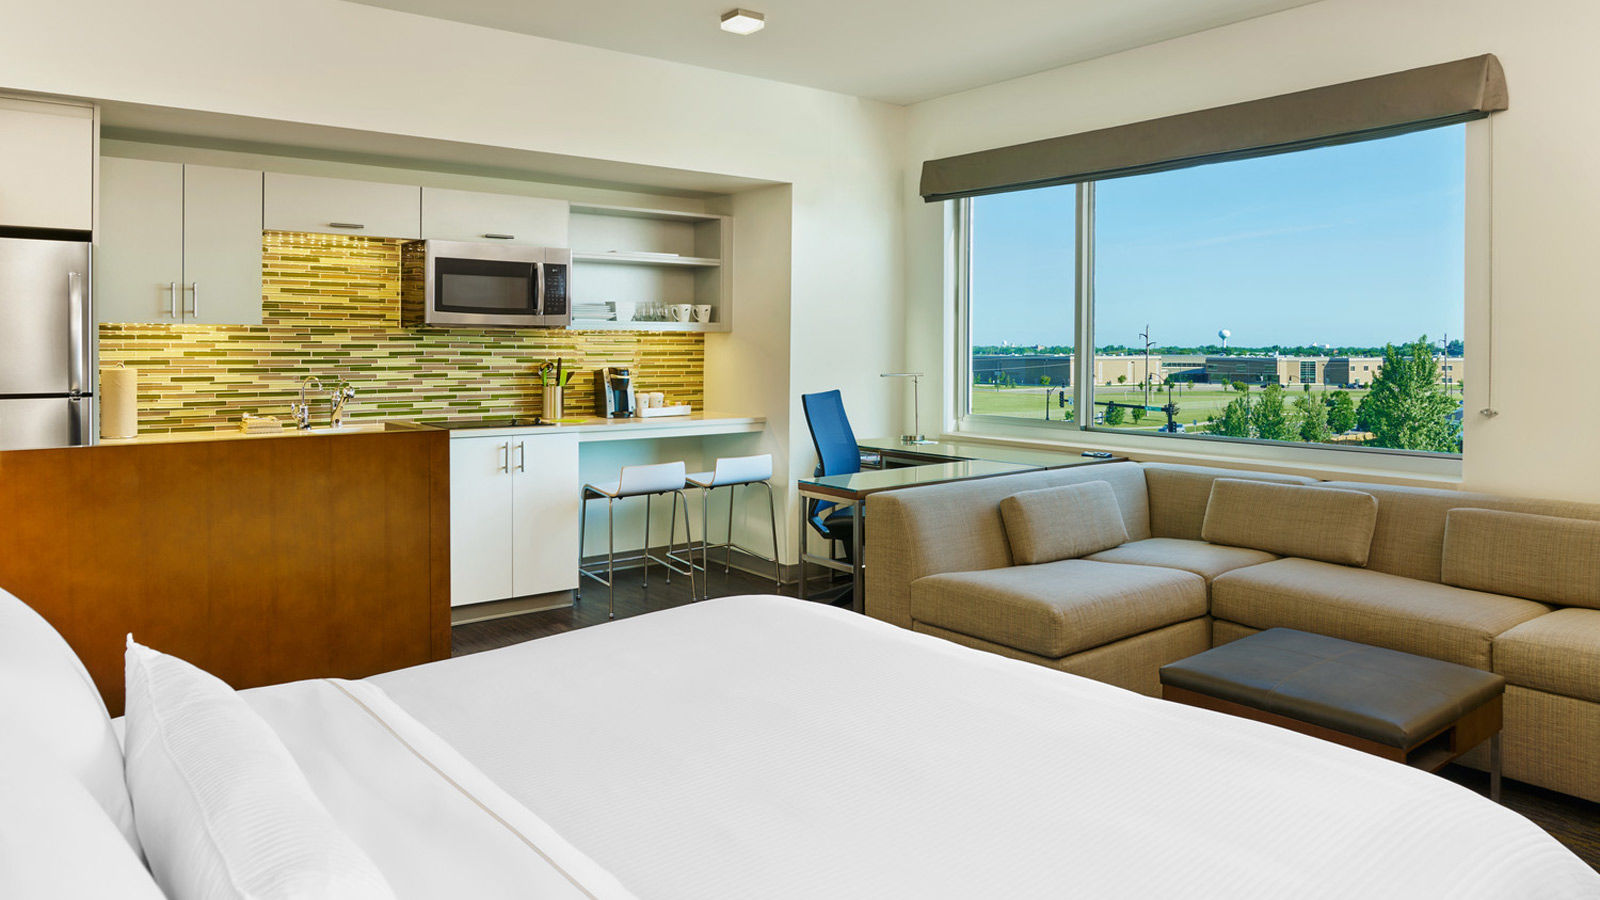 Extended Stay Hotels Fargo ND - Guest Room